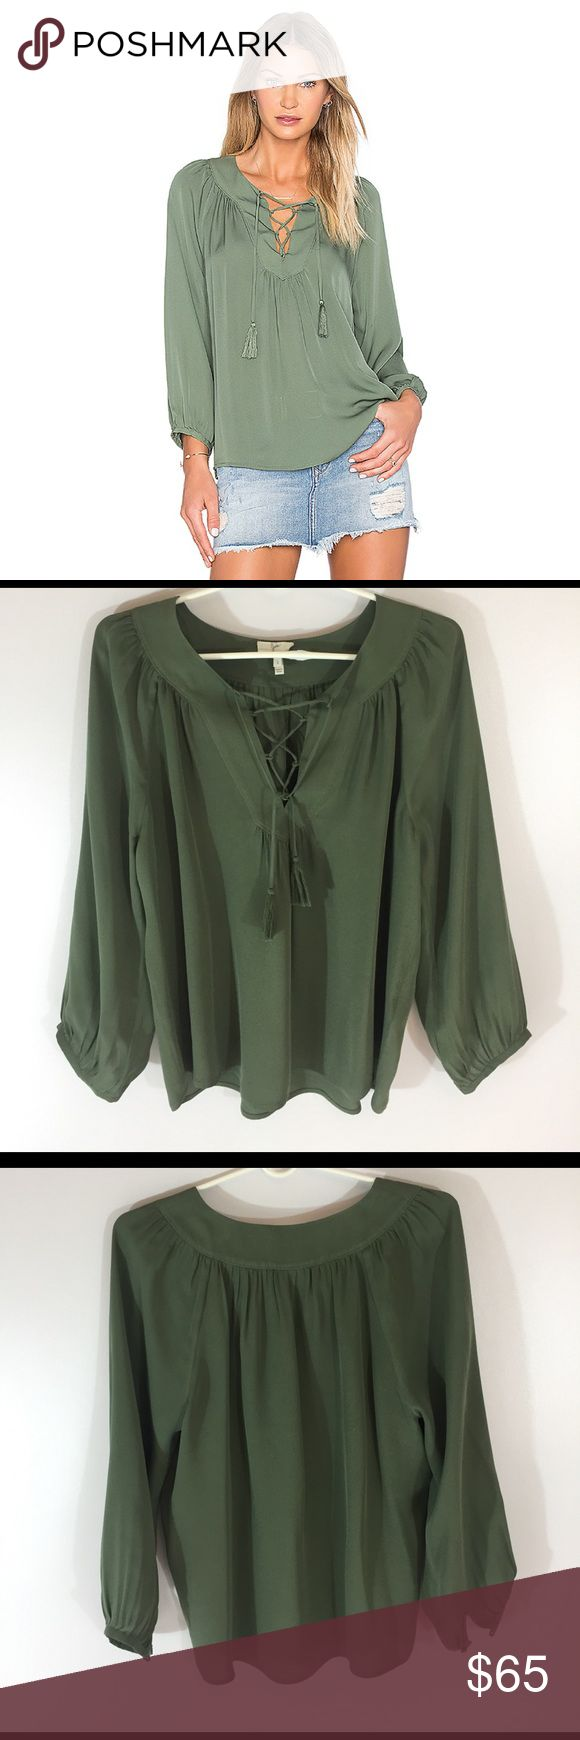 Joie Pacaya Silk Blouse So cute and perfect dressed up or down! Excellent condition - like new. Color olive green. 100% silk. Size small. Dry cleaned. Joie Tops Blouses